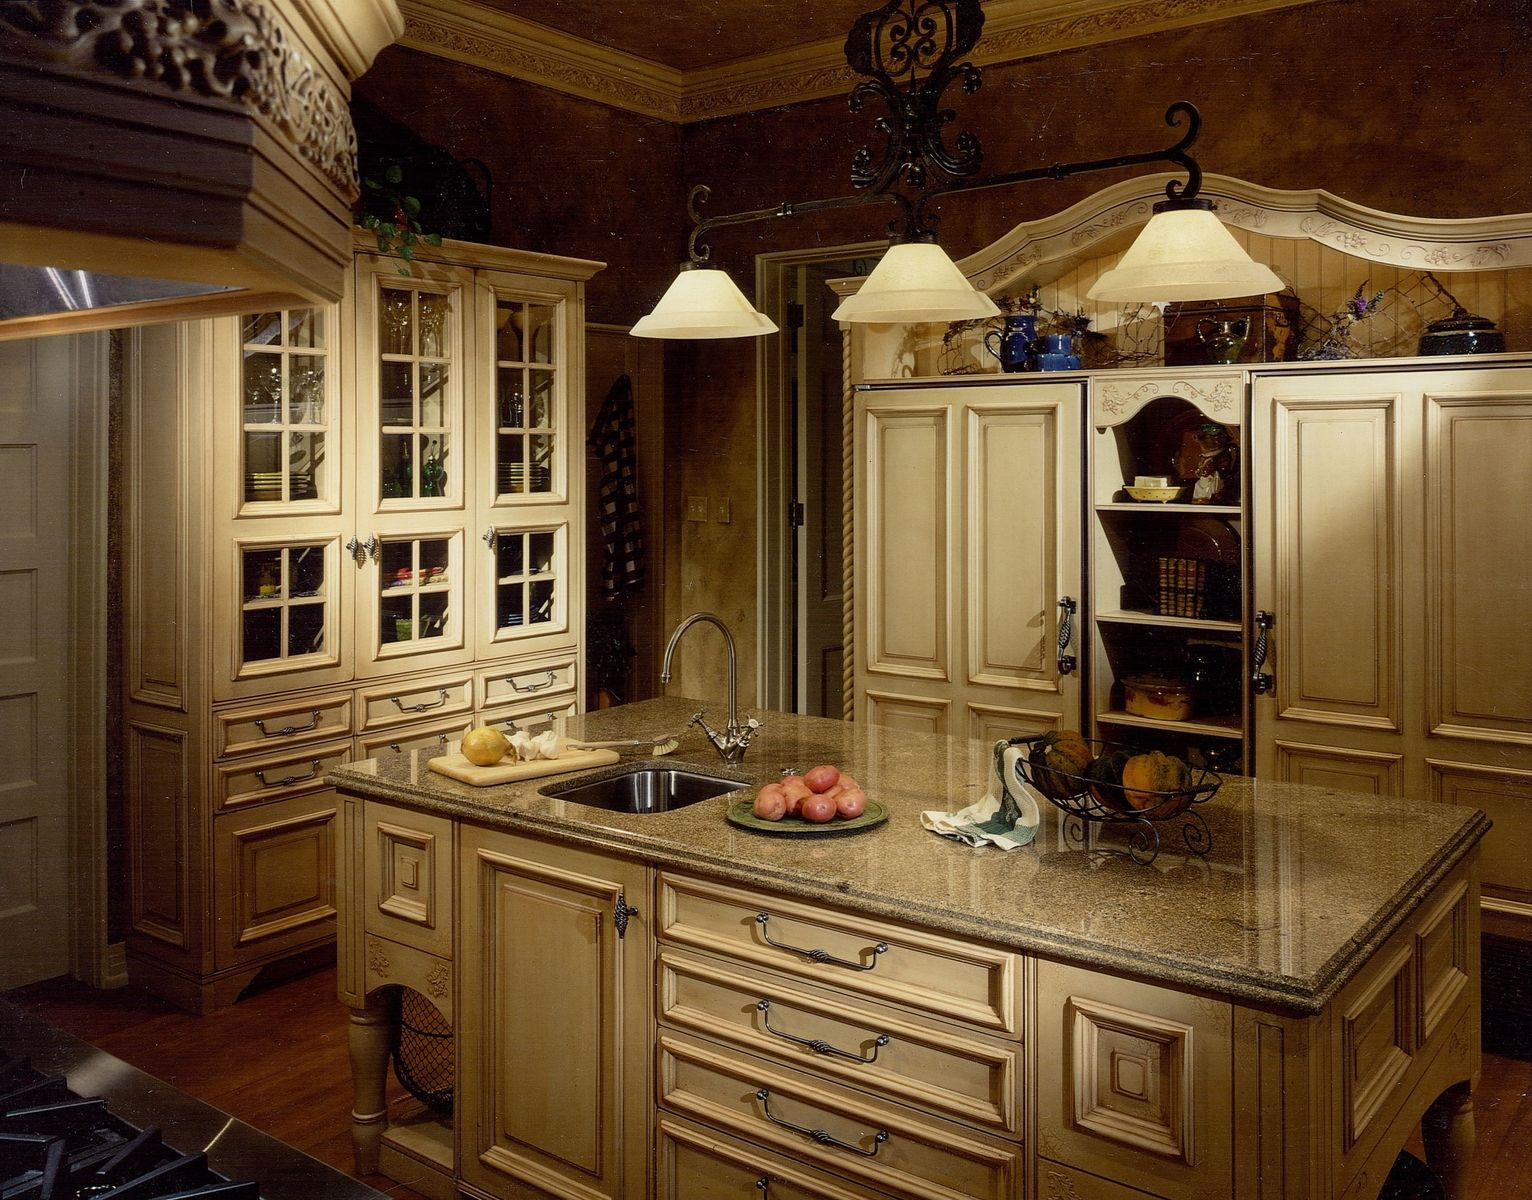 Country Kitchen Designs | ... Kitchen Storage Organization Furniturizing A  French Country Kitchen